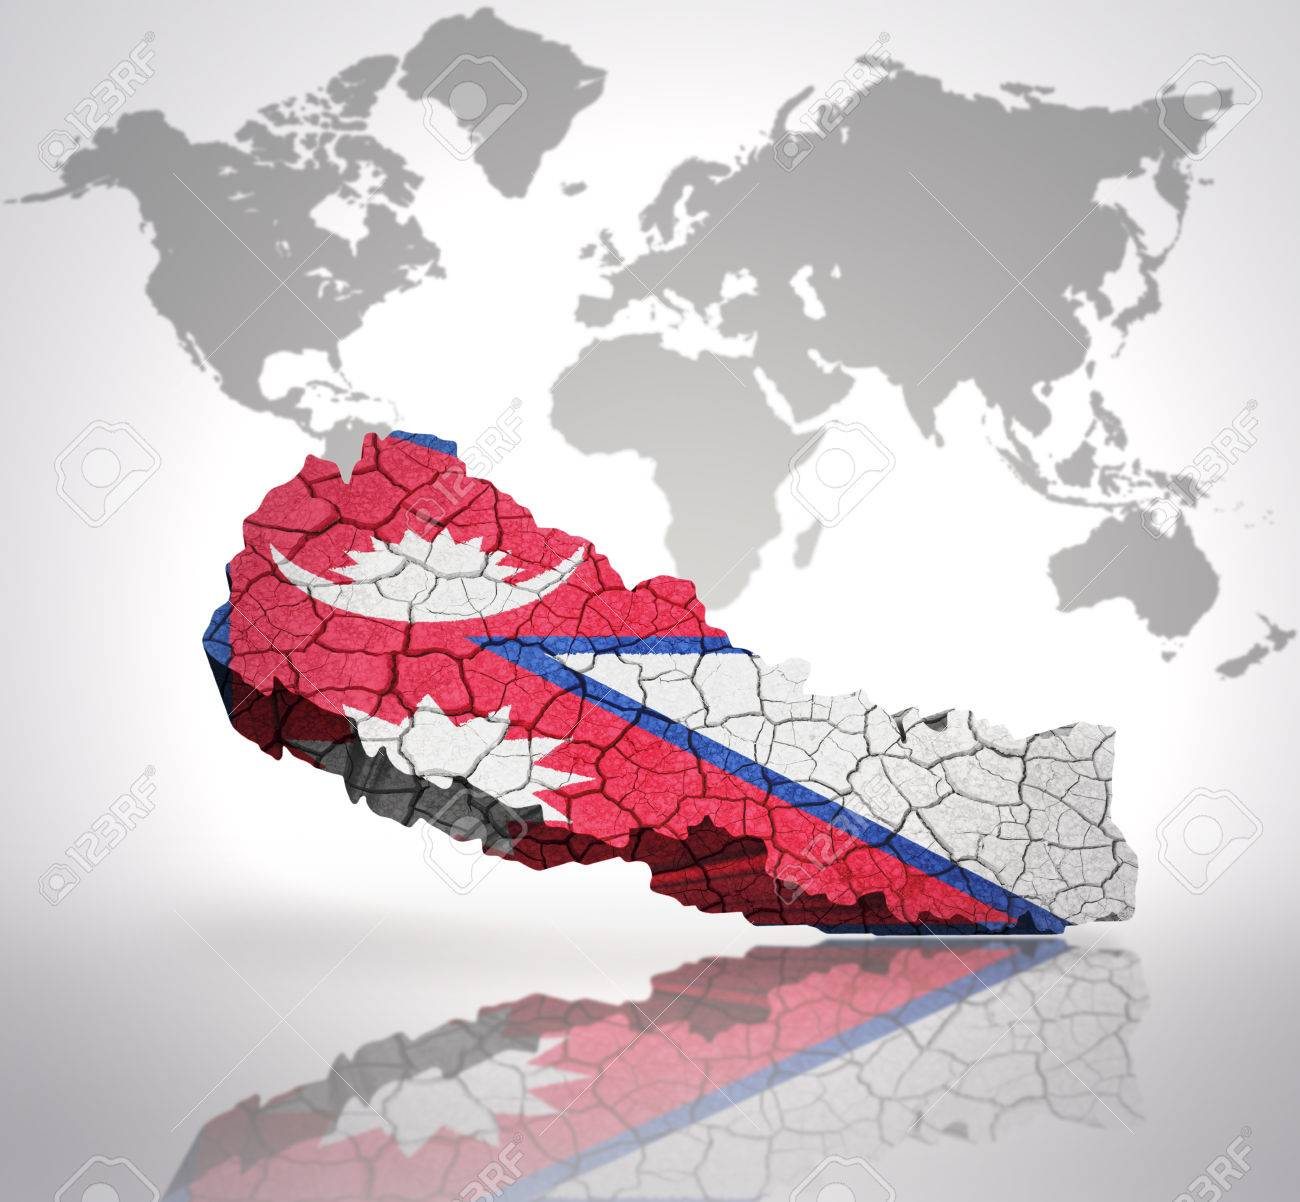 Map Of Nepal With Nepali Flag On A World Map Background Stock Photo ...